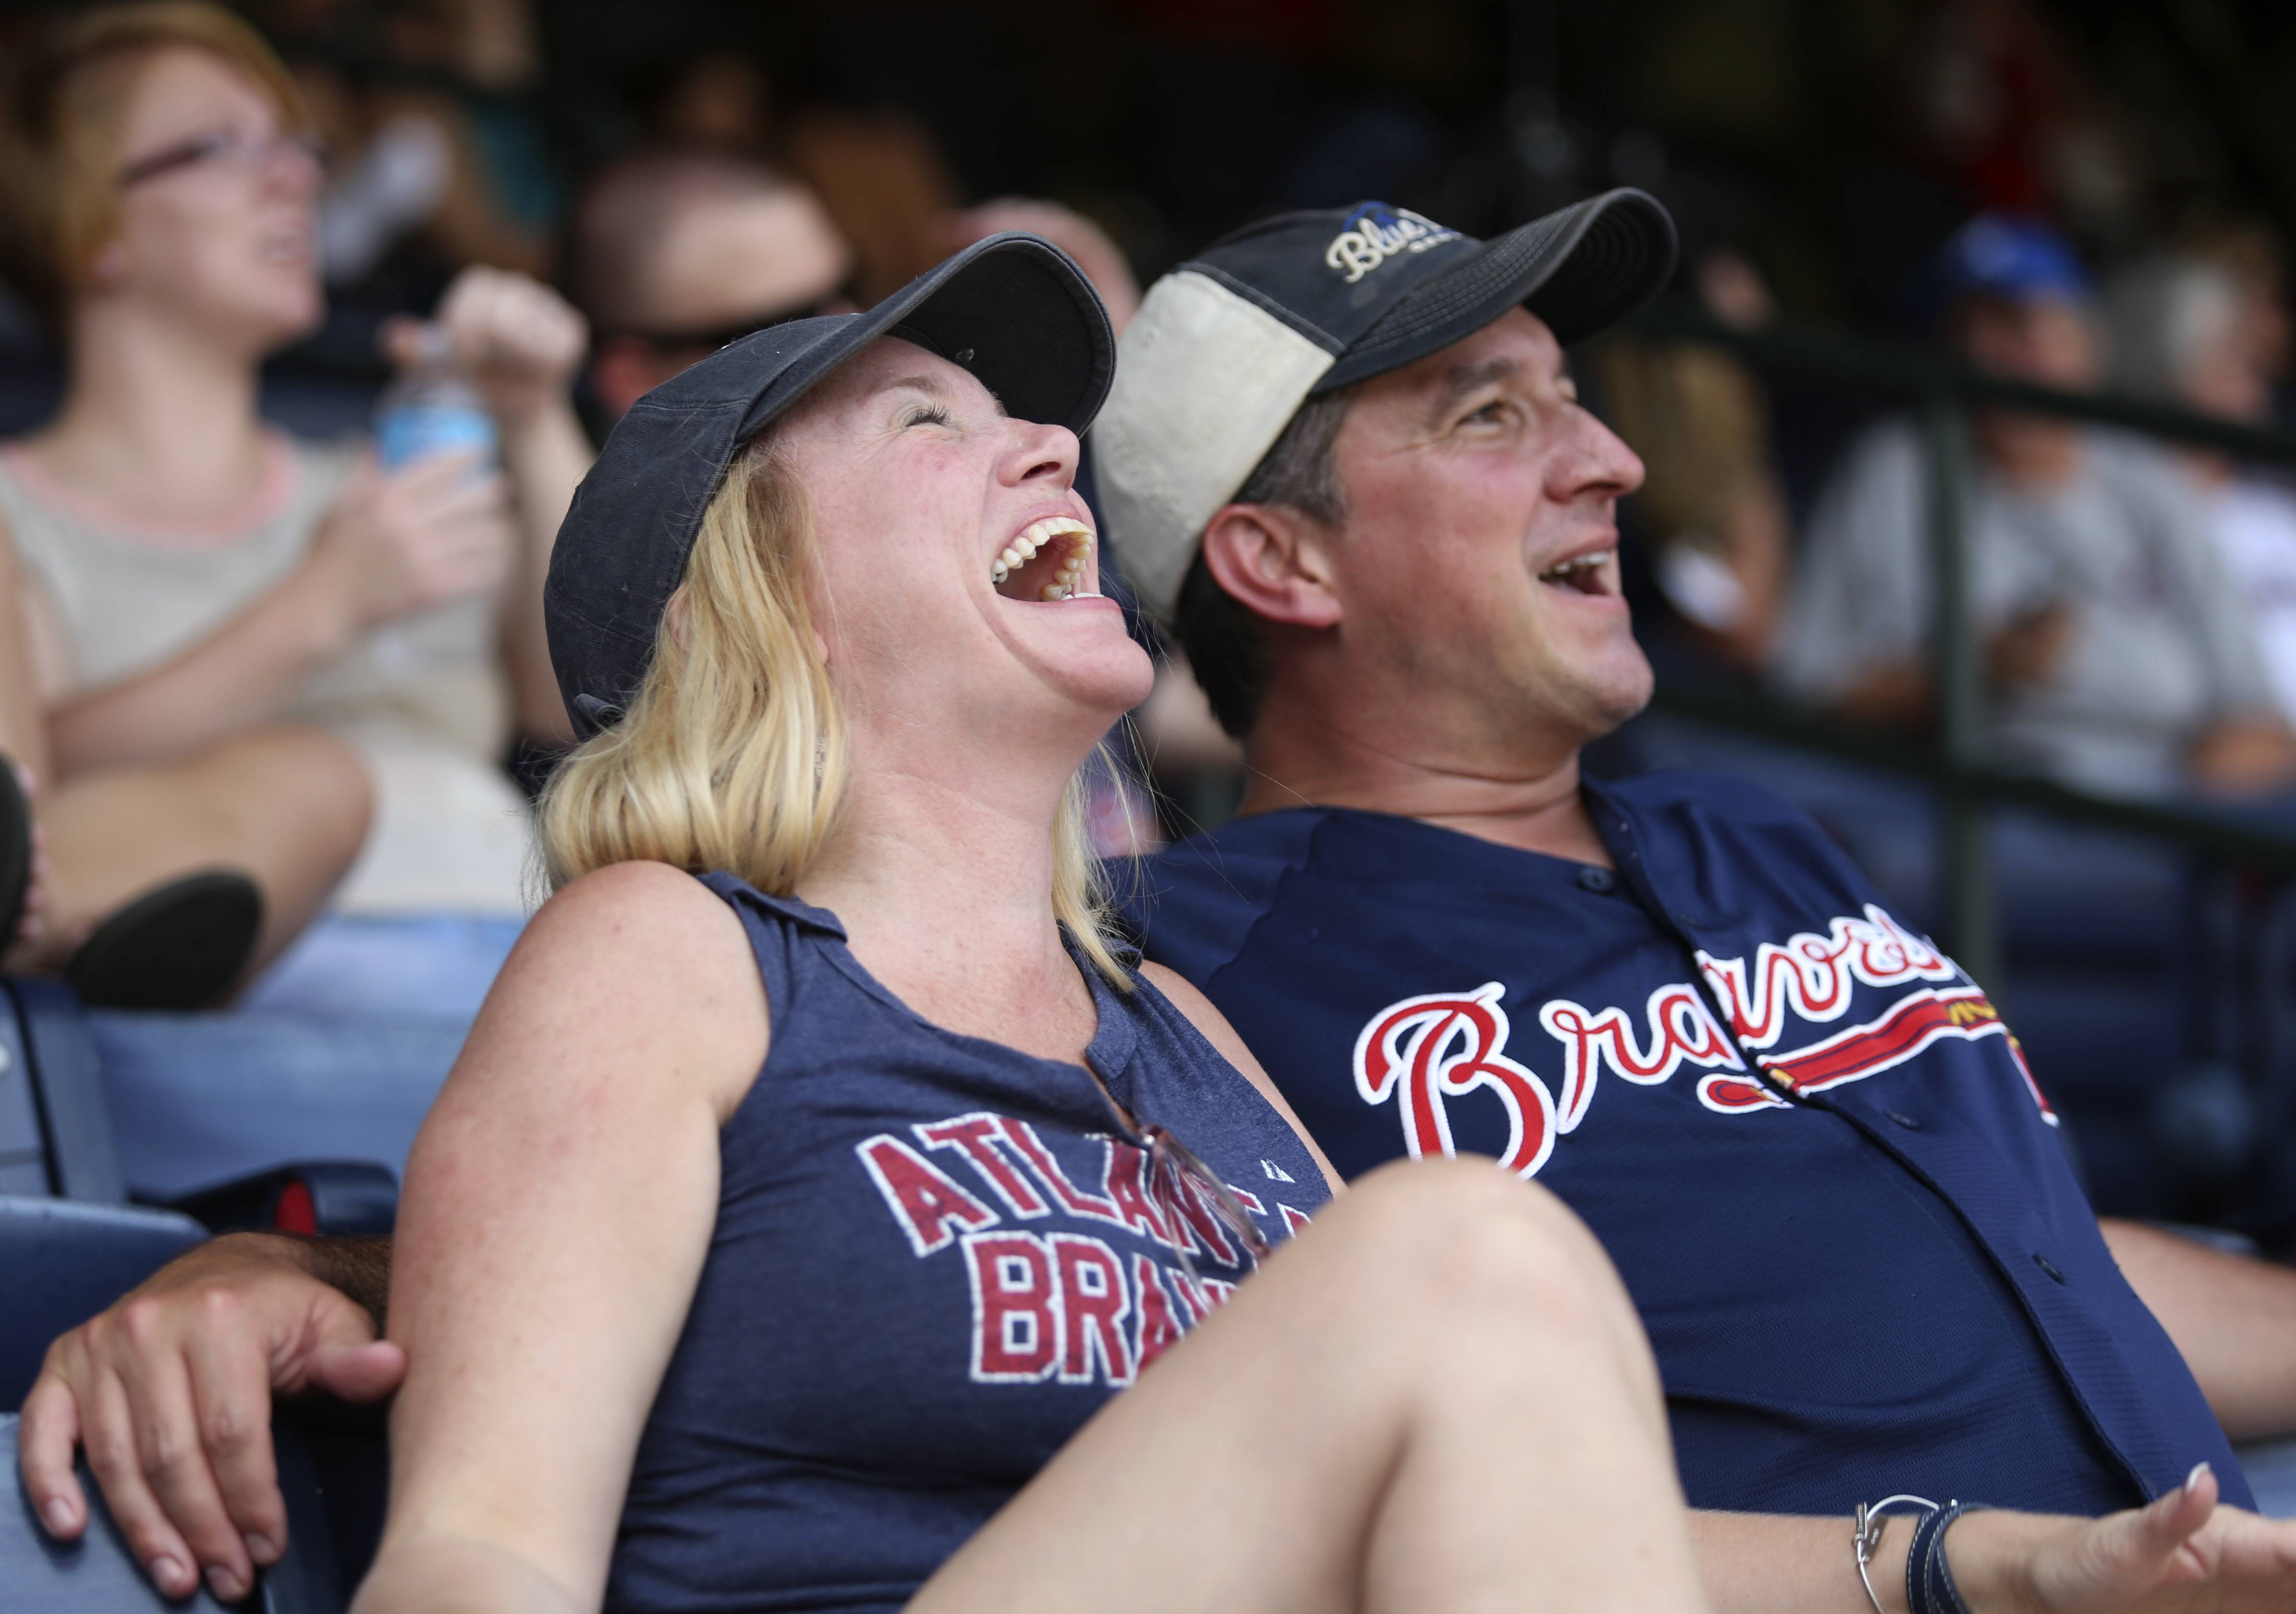 Merry, left, and her husband Mike Quarles, of Woodstock, Ga., react to a comment by former Atlanta Braves manager Bobby Cox as they watched the broadcast of the Baseball Hall of Fame induction ceremony, before the Braves' game against the San Diego Padres at Turner Field on Sunday afternoon, July 27, 2014, in Atlanta. Three former Braves--manager Bobby Cox and pitchers Greg Maddux and Tom Glavine--were inducted into the hall on Sunday.